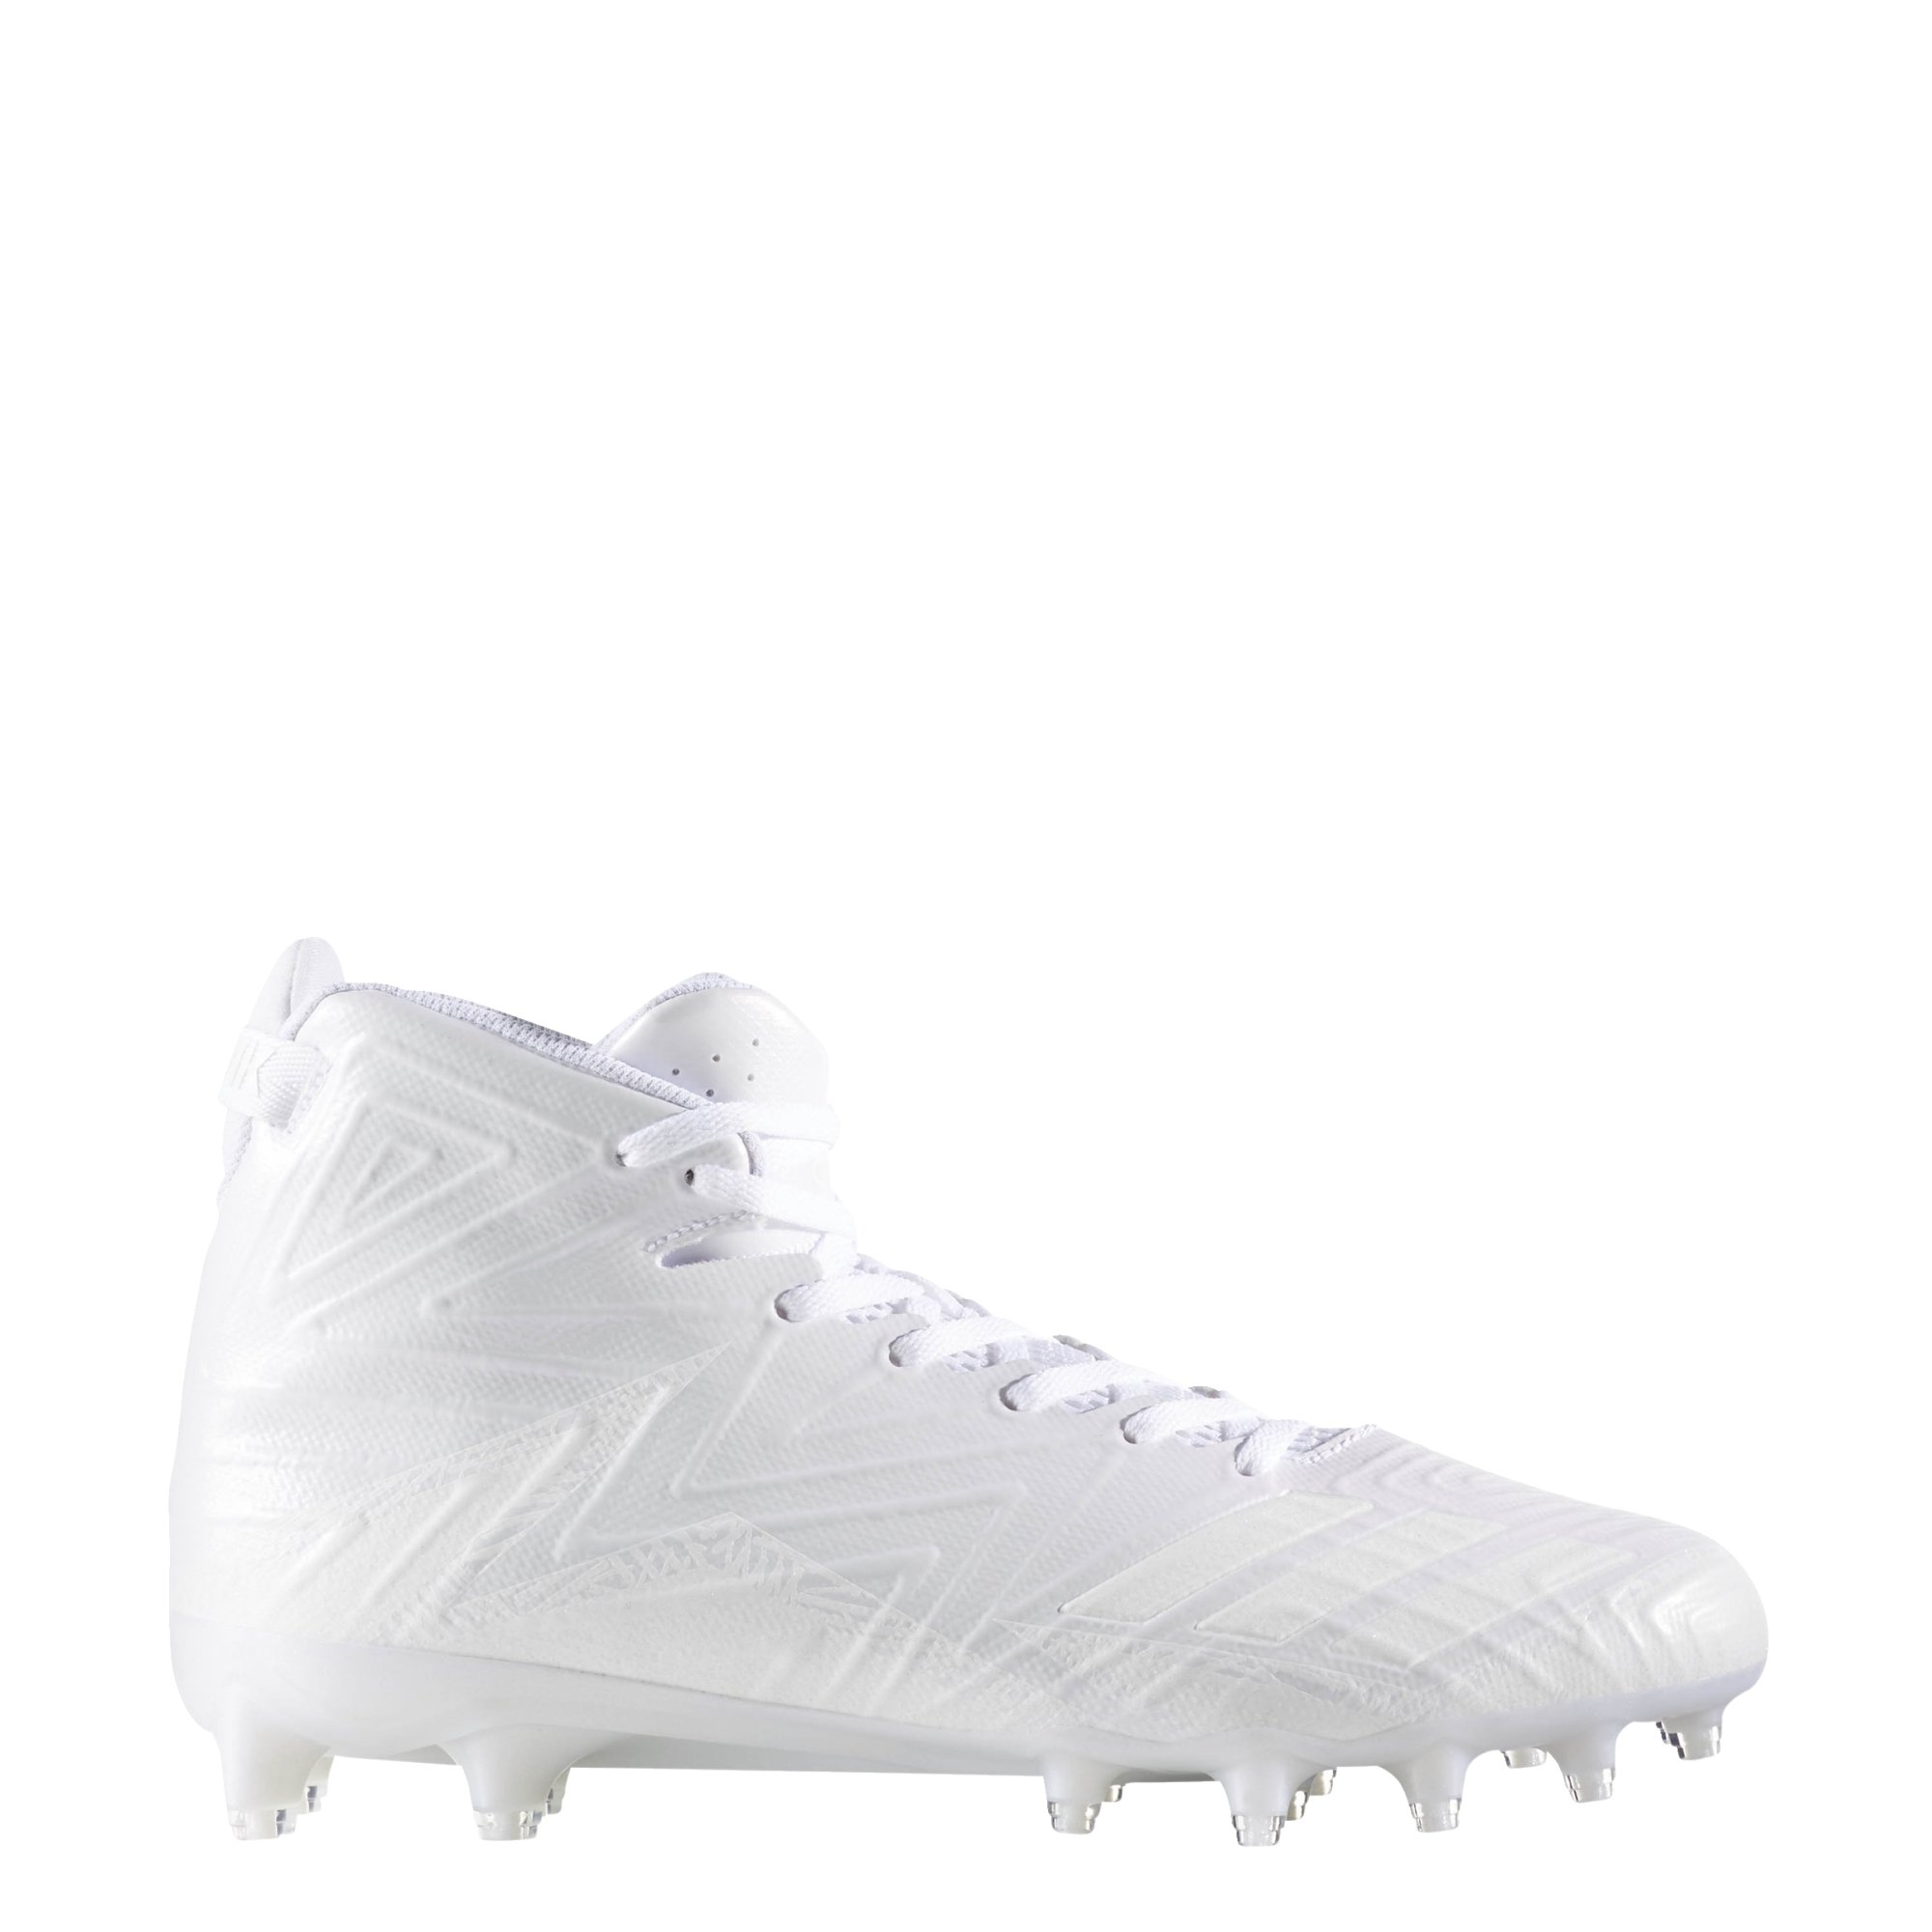 adidas Men's Freak X Carbon Mid Football Shoe, White/White/White, 13 Medium US